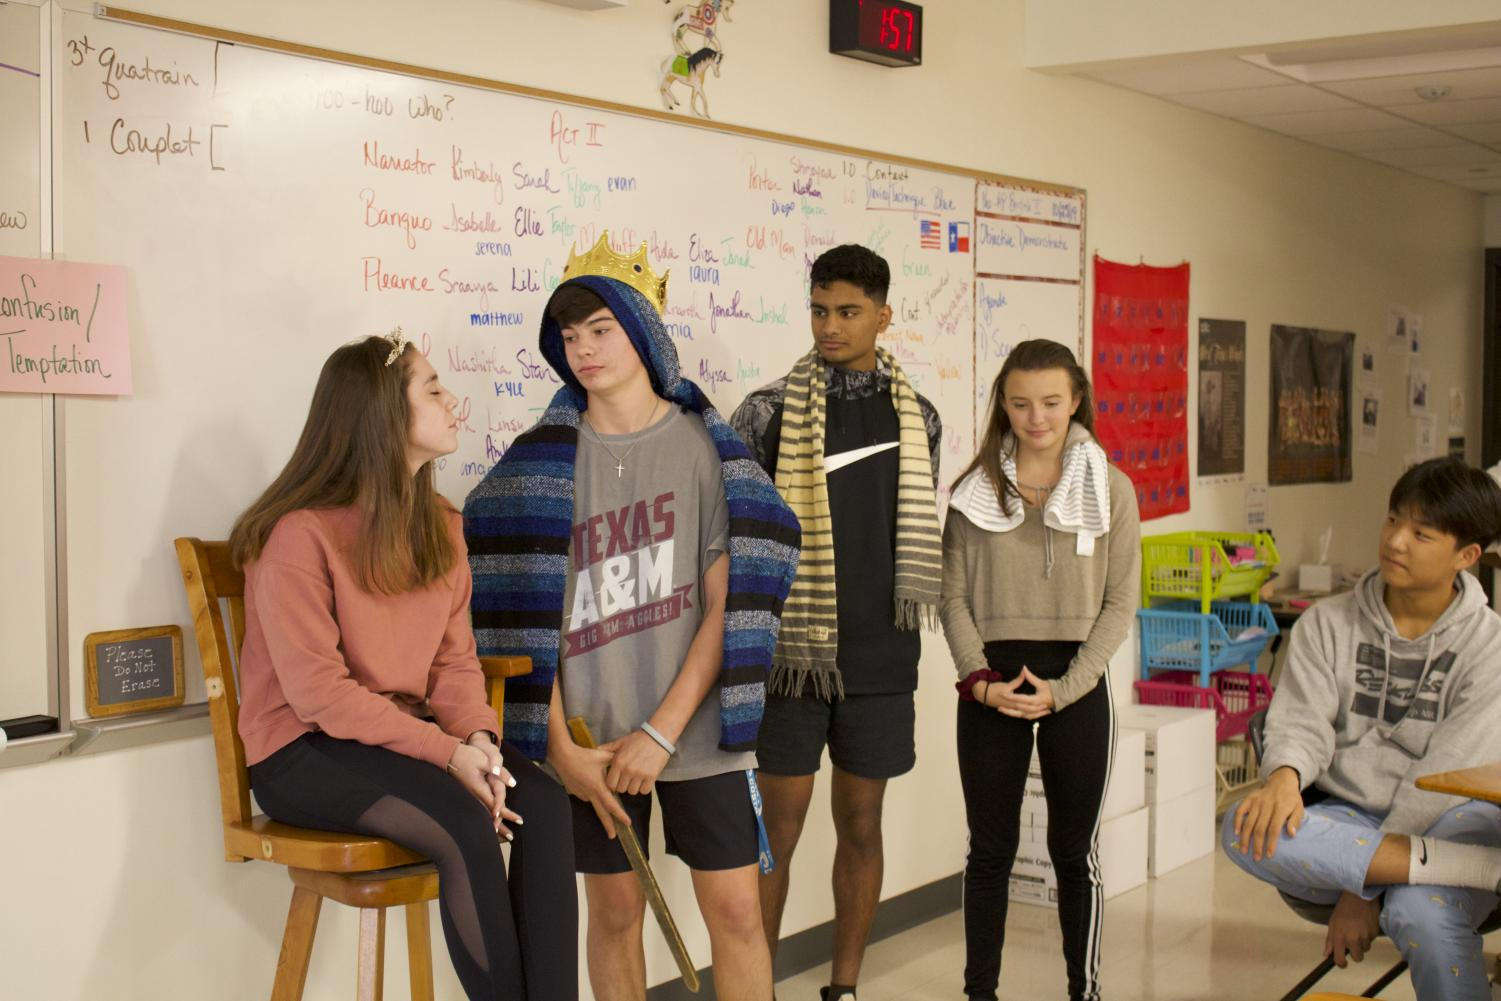 Sophomores+Teddie+Hall%2C+Gus+Wendland%2C+Viswaved+Uppala%2C+and+Camille+Marshall+reenact+Act+III%2C+Scene+IV+of+Macbeth.+In+this+scene%2C+after+hiring+a+thief+to+brutally+bash+in+Banquo%27s+head%2C+Wendland+is+celebrating+with+a+blissful+banquet.